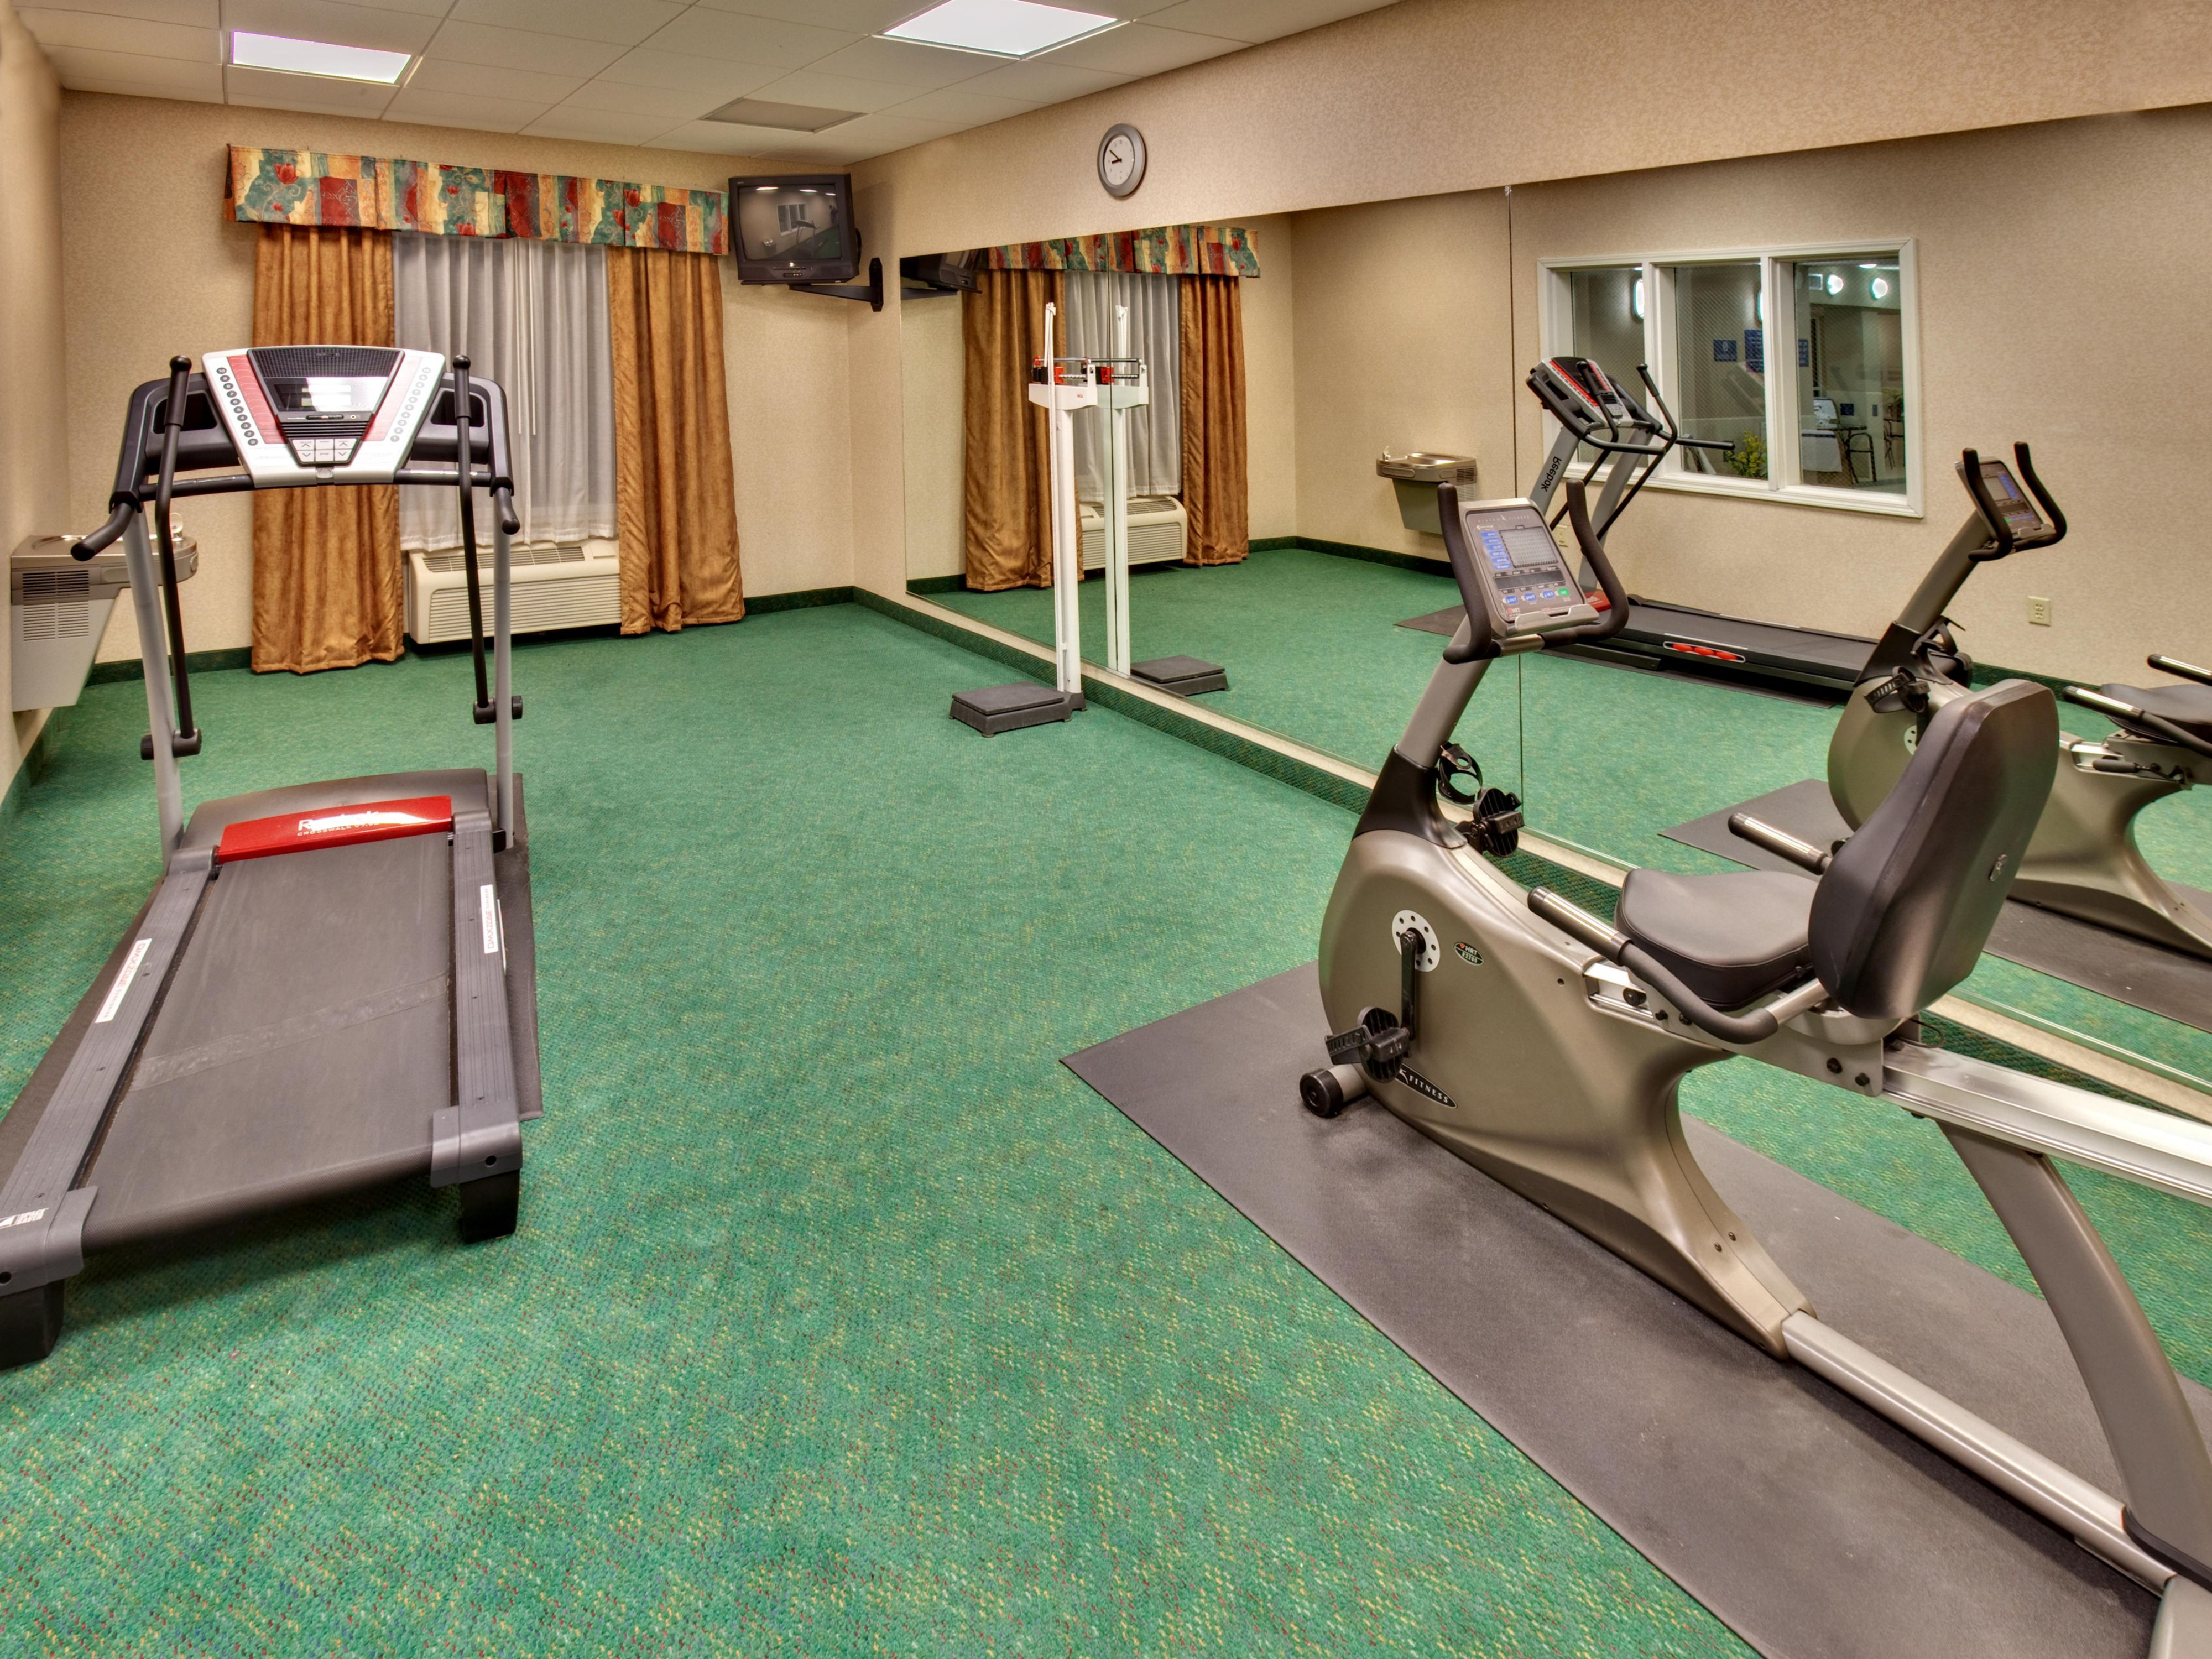 Holiday Inn Express Vermillion Fitness Center